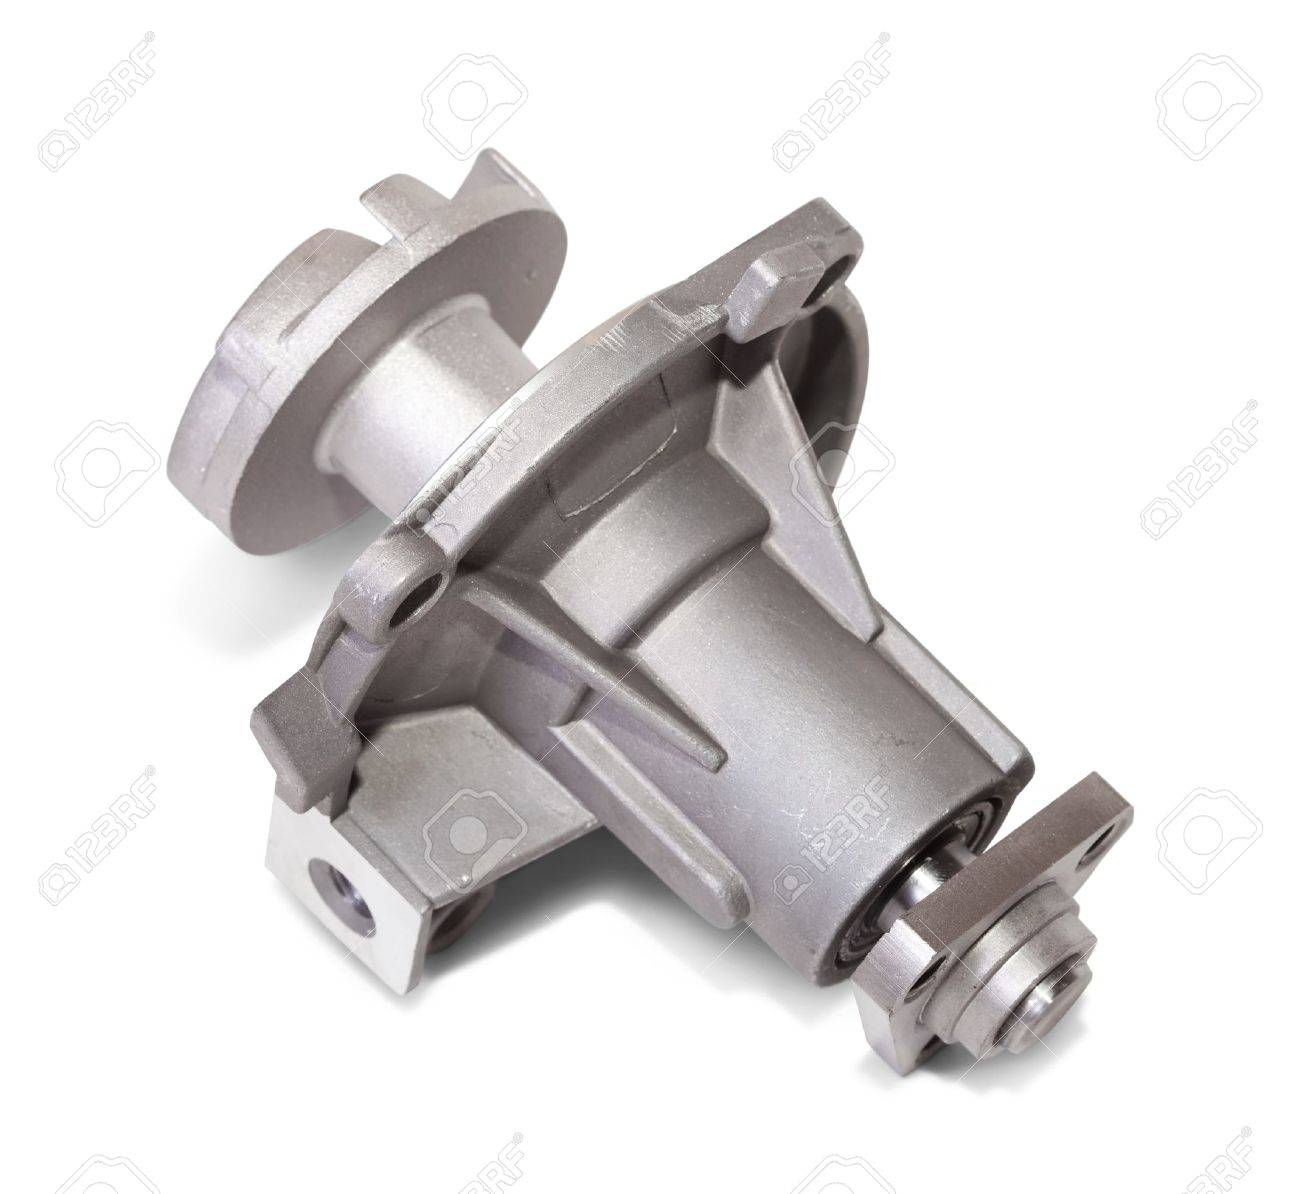 automotive water pump. Isolated on white with clipping path Stock Photo - 12942001